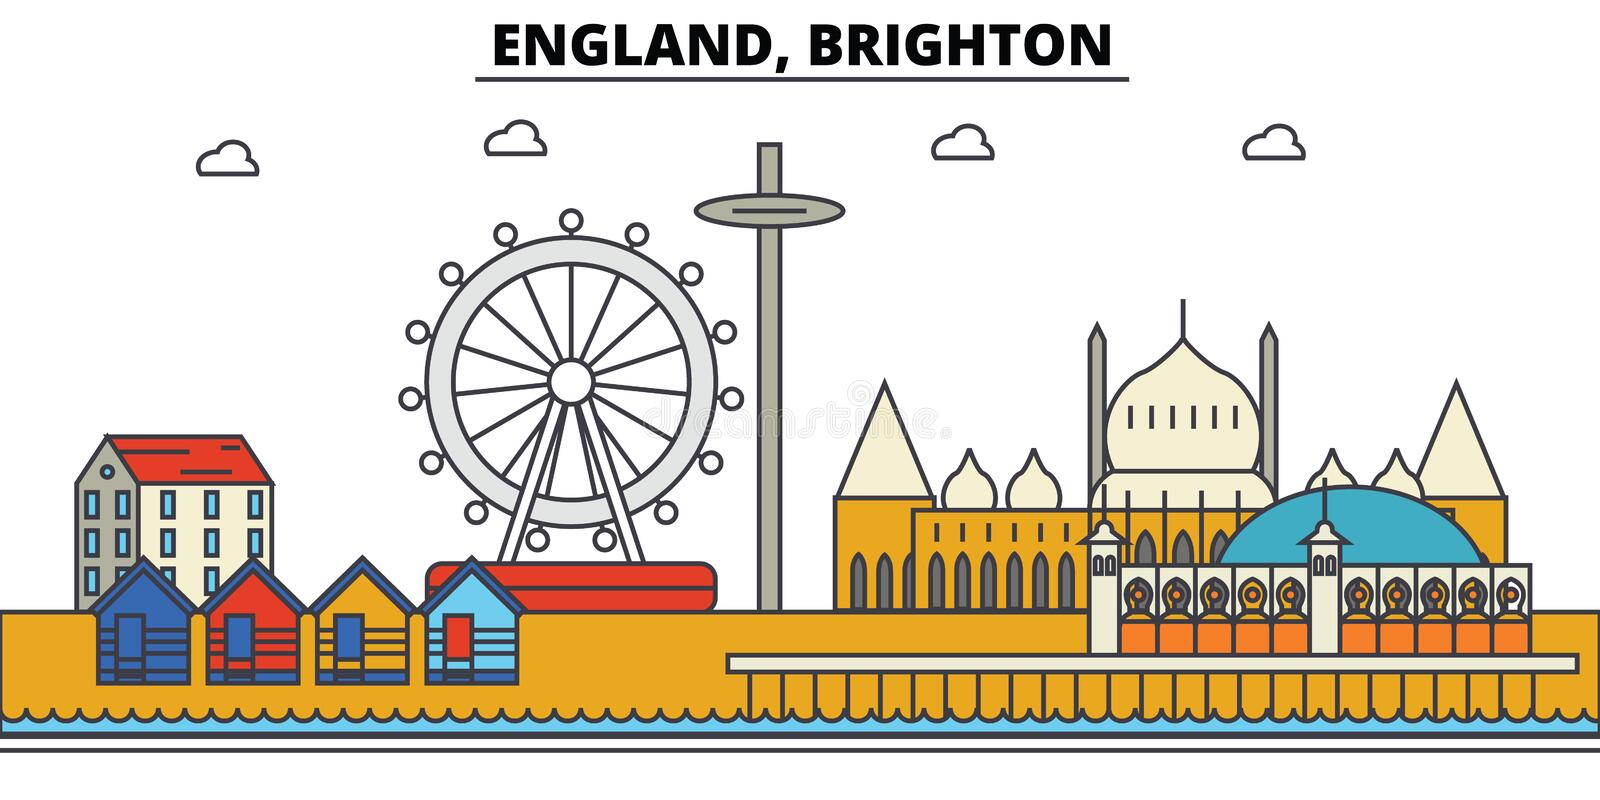 Engeland, Brighton De architectuur Editable van de stadshorizon stock illustratie